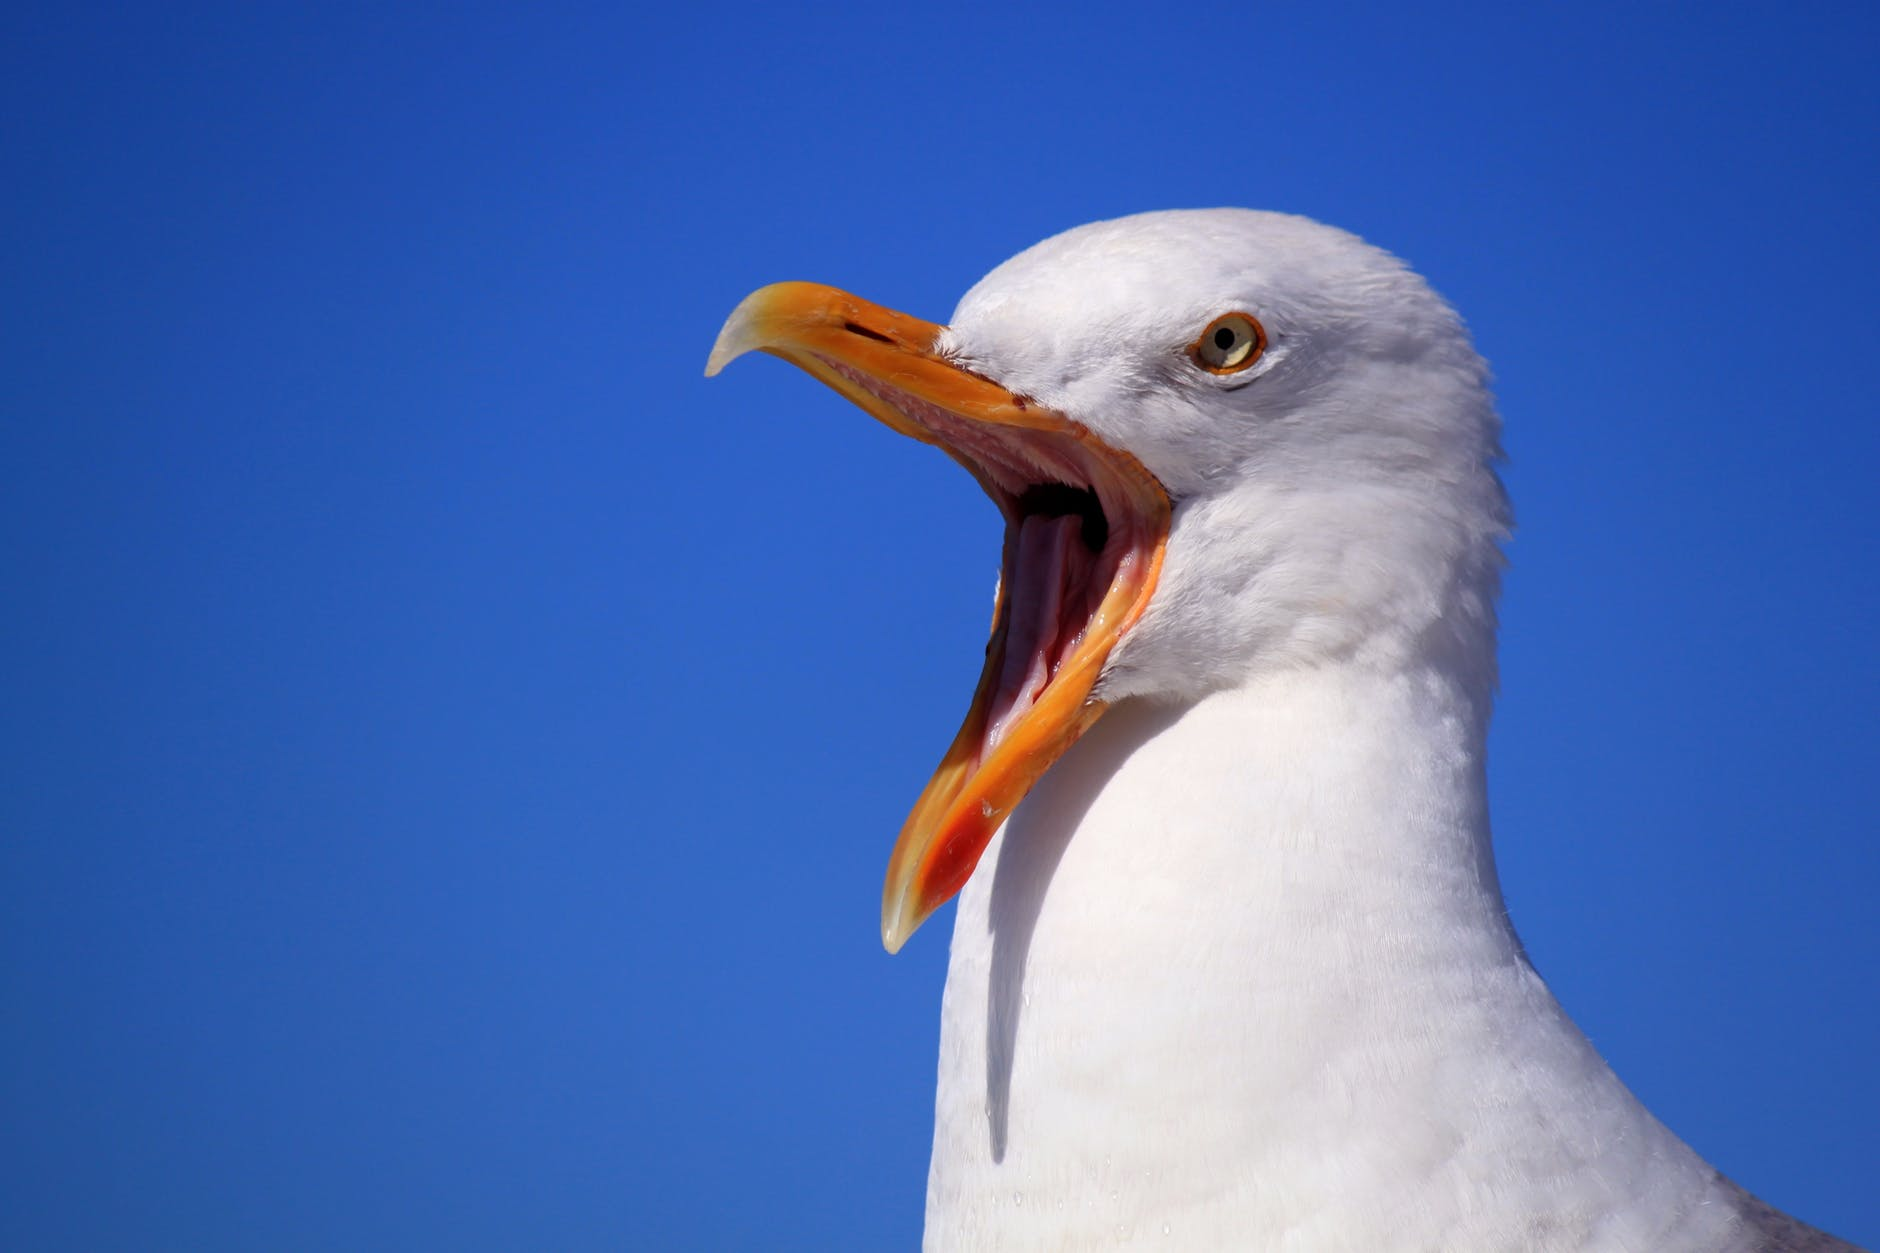 seagull-sky-holiday-bird-56618.jpeg